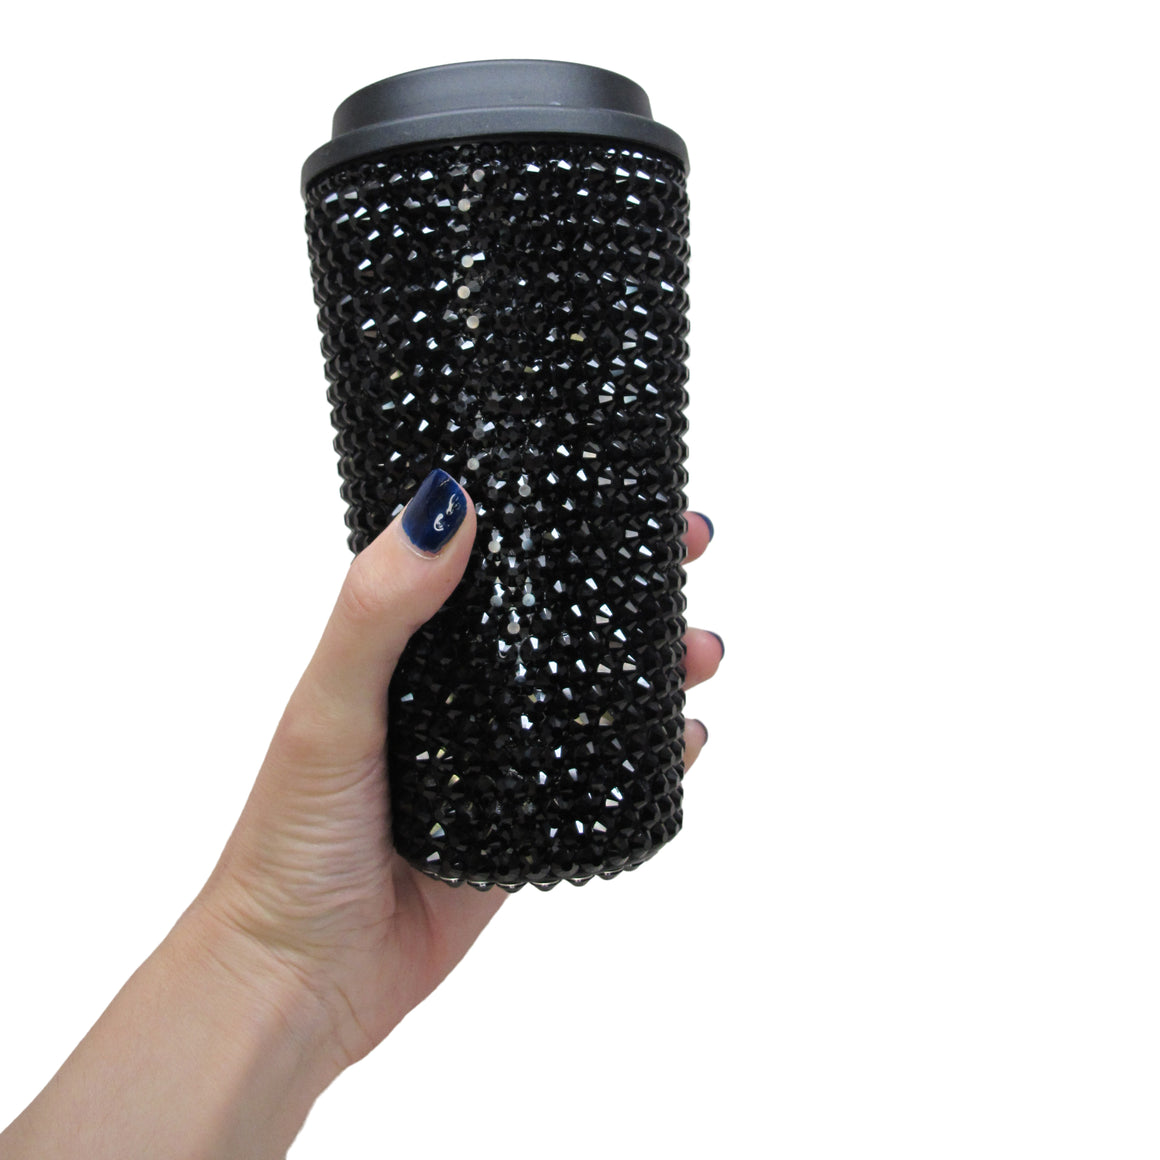 Crystal Travel Coffee Cup - Black